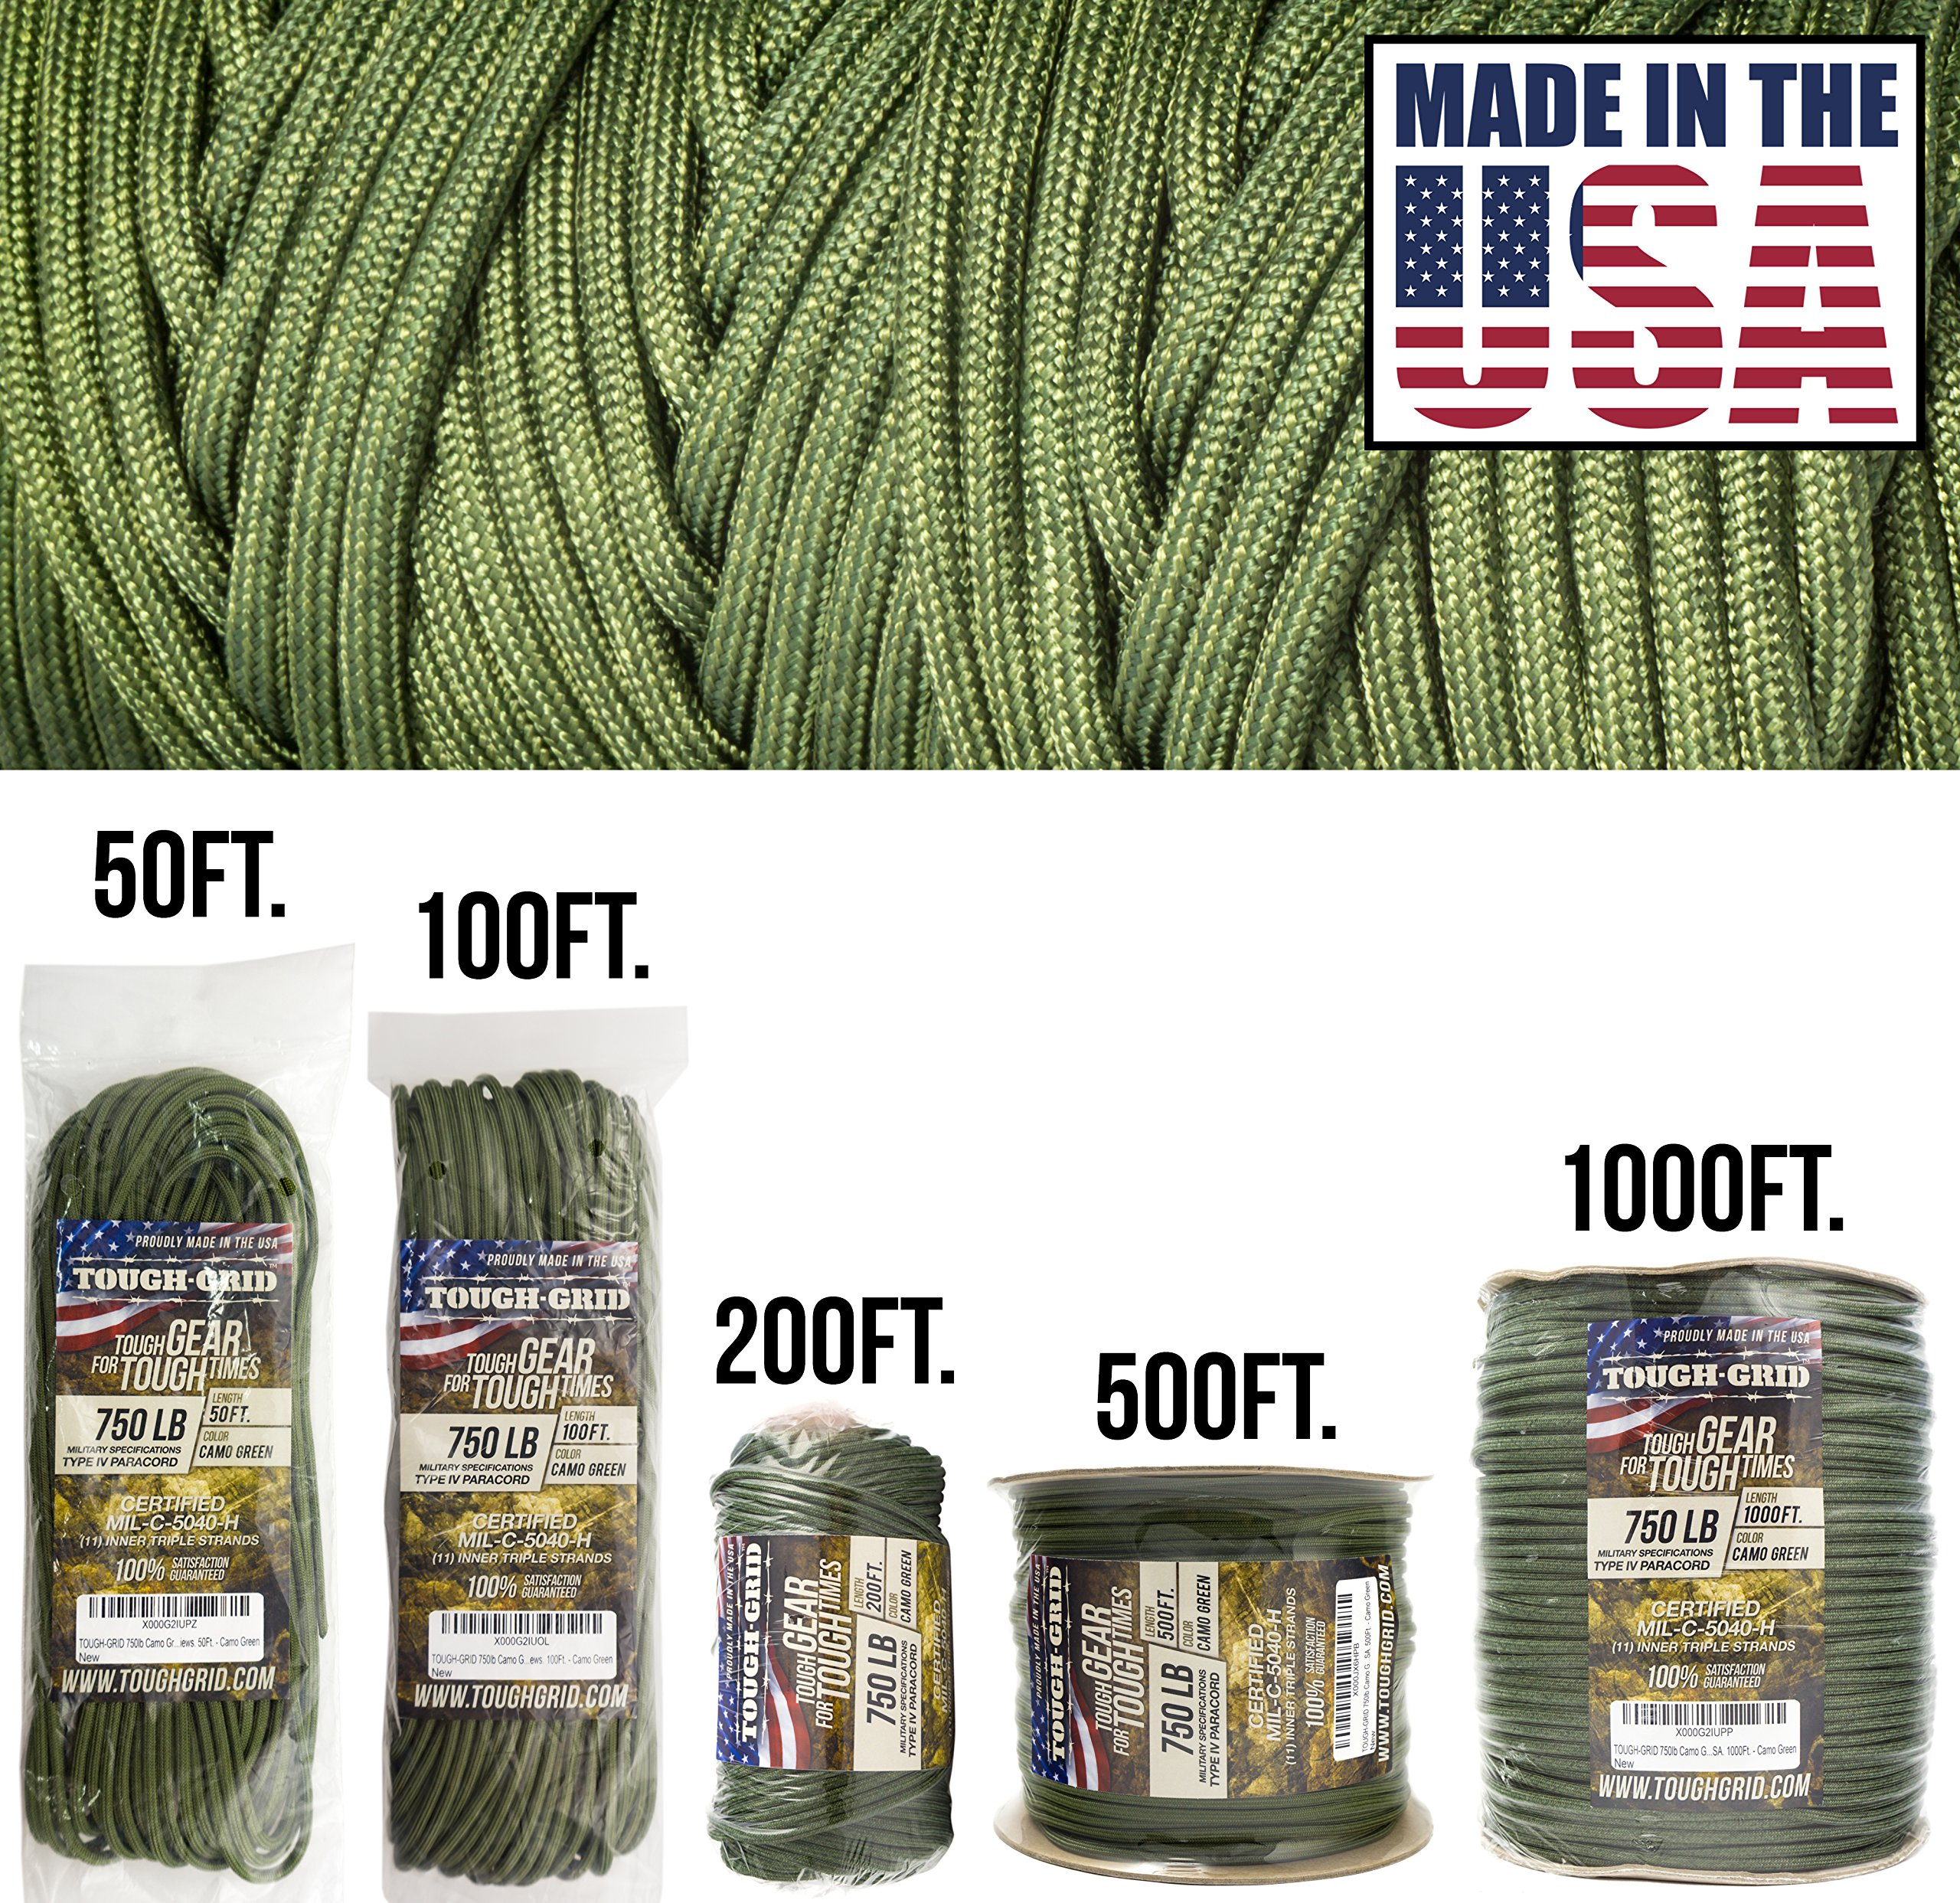 TOUGH-GRID 750lb Camo Green Paracord/Parachute Cord - Genuine Mil Spec Type IV 750lb Paracord Used by The US Military (MIl-C-5040-H) - 100% Nylon - Made in The USA. 500Ft. - Camo Green by TOUGH-GRID